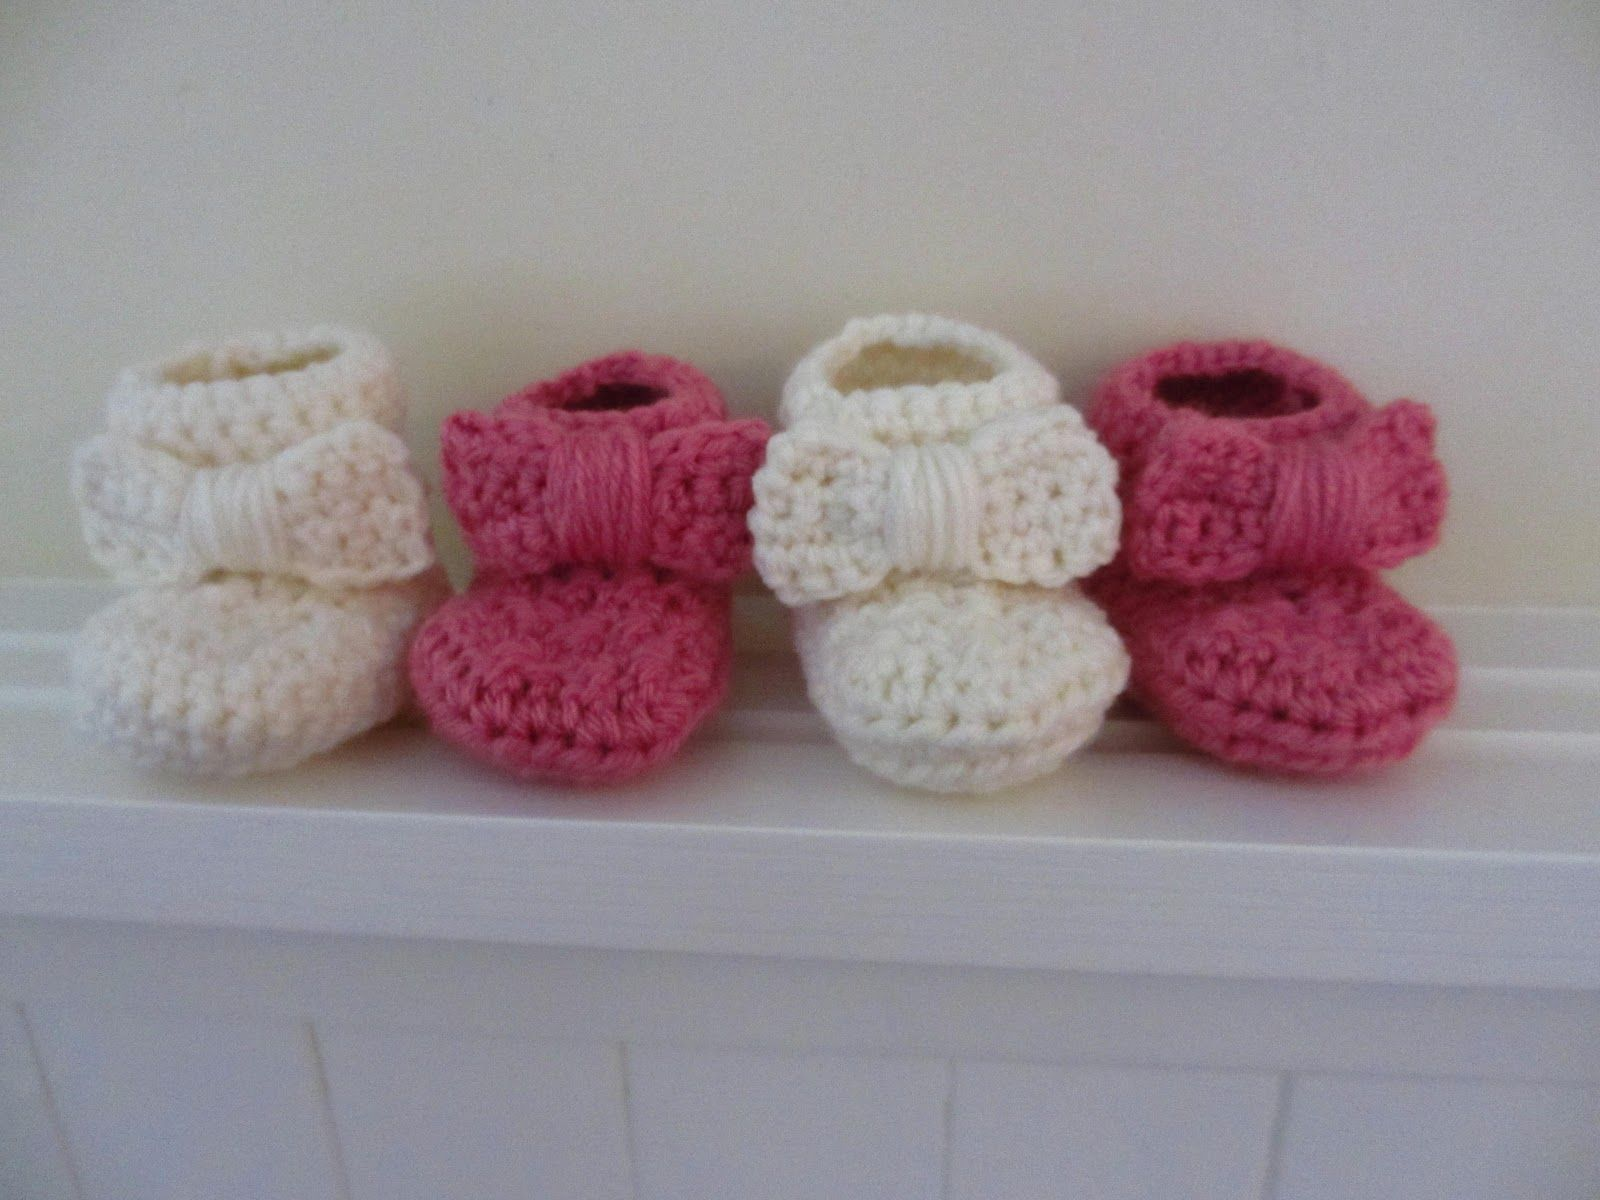 Bootie-licious Crochet Patterns: 8 Baby Booties | Baby booties, Baby ...